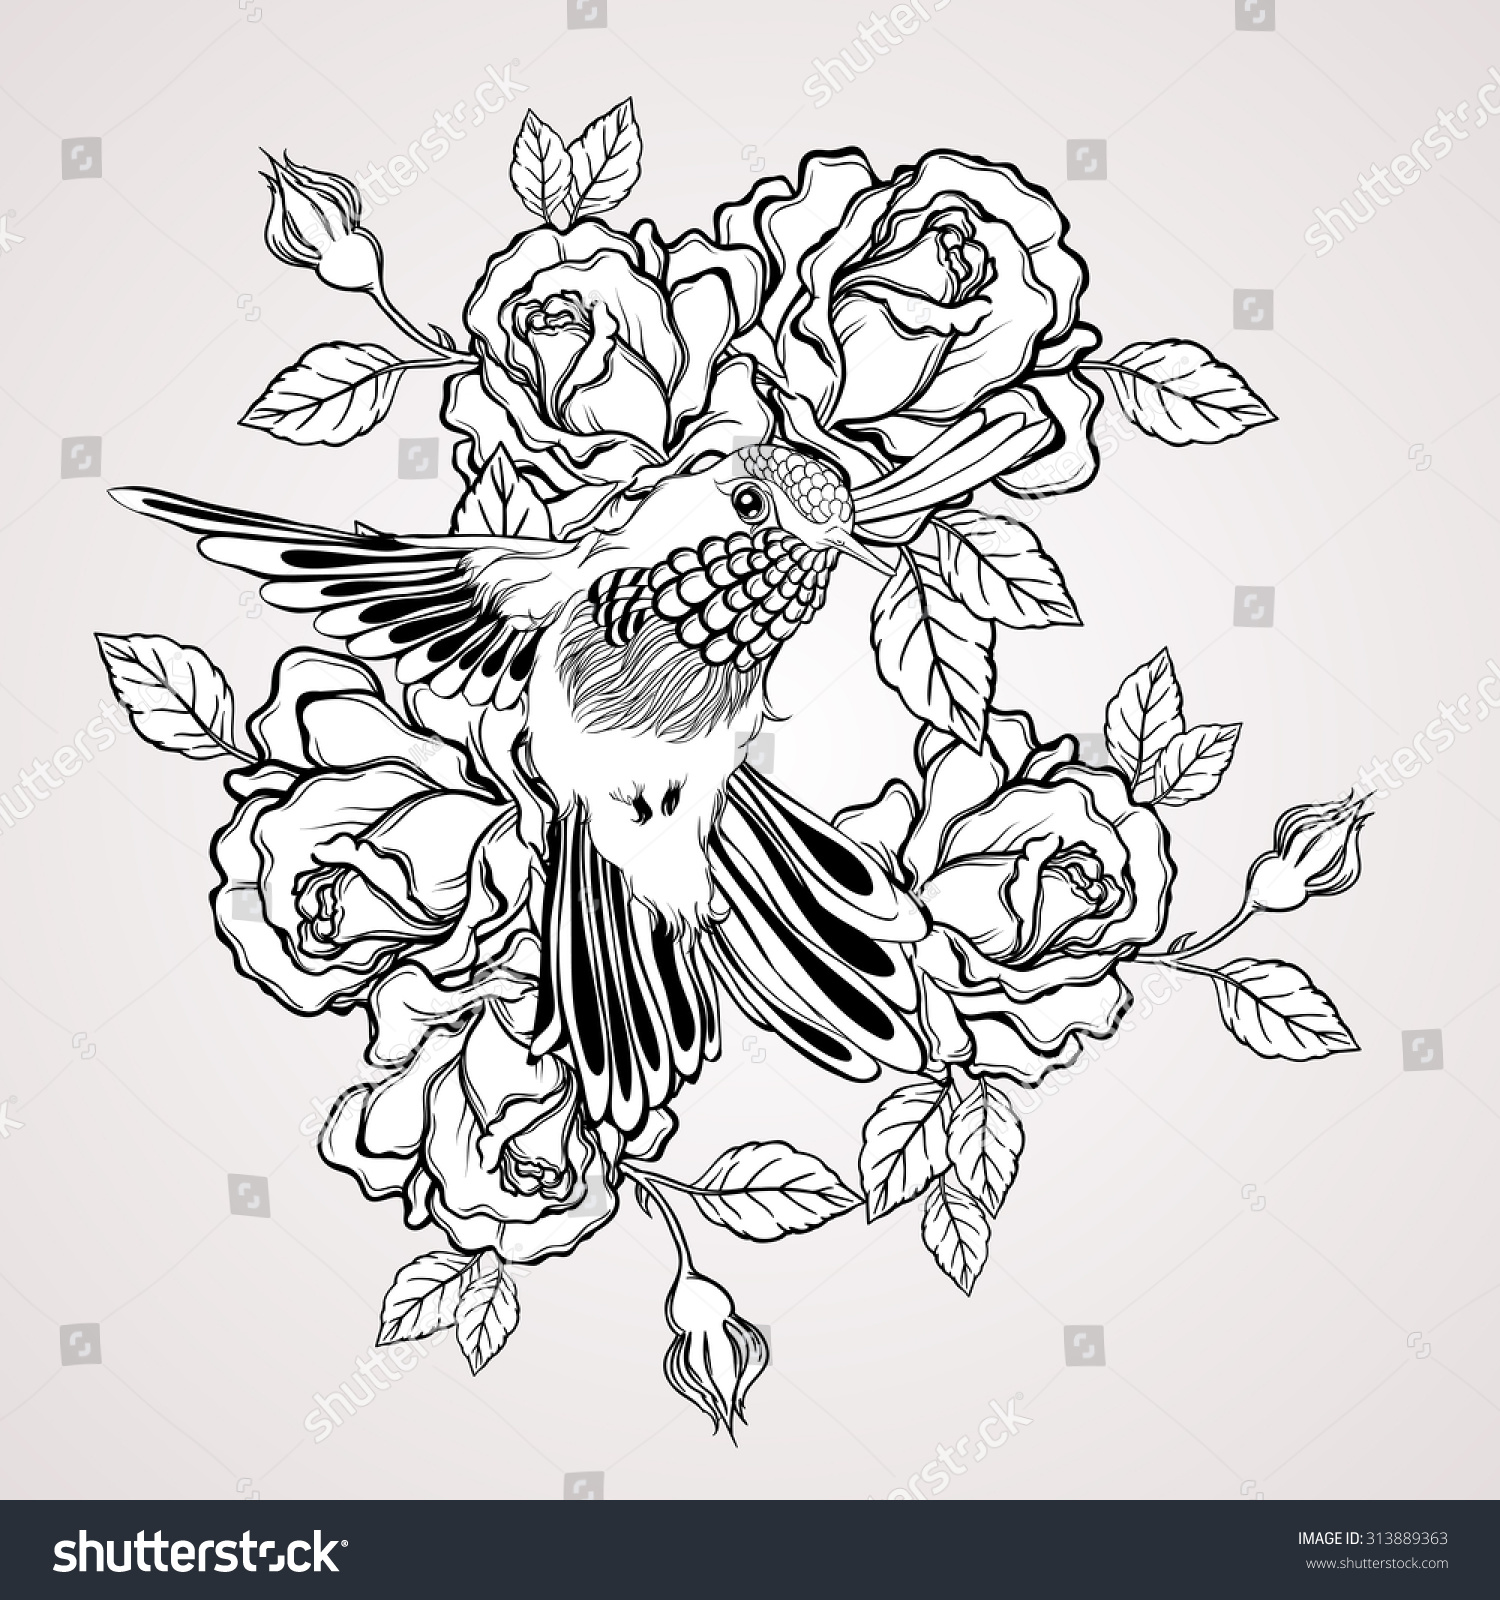 Tato Art Styles: Hand Drawn Flying Humming Bird Rose Stock Illustration